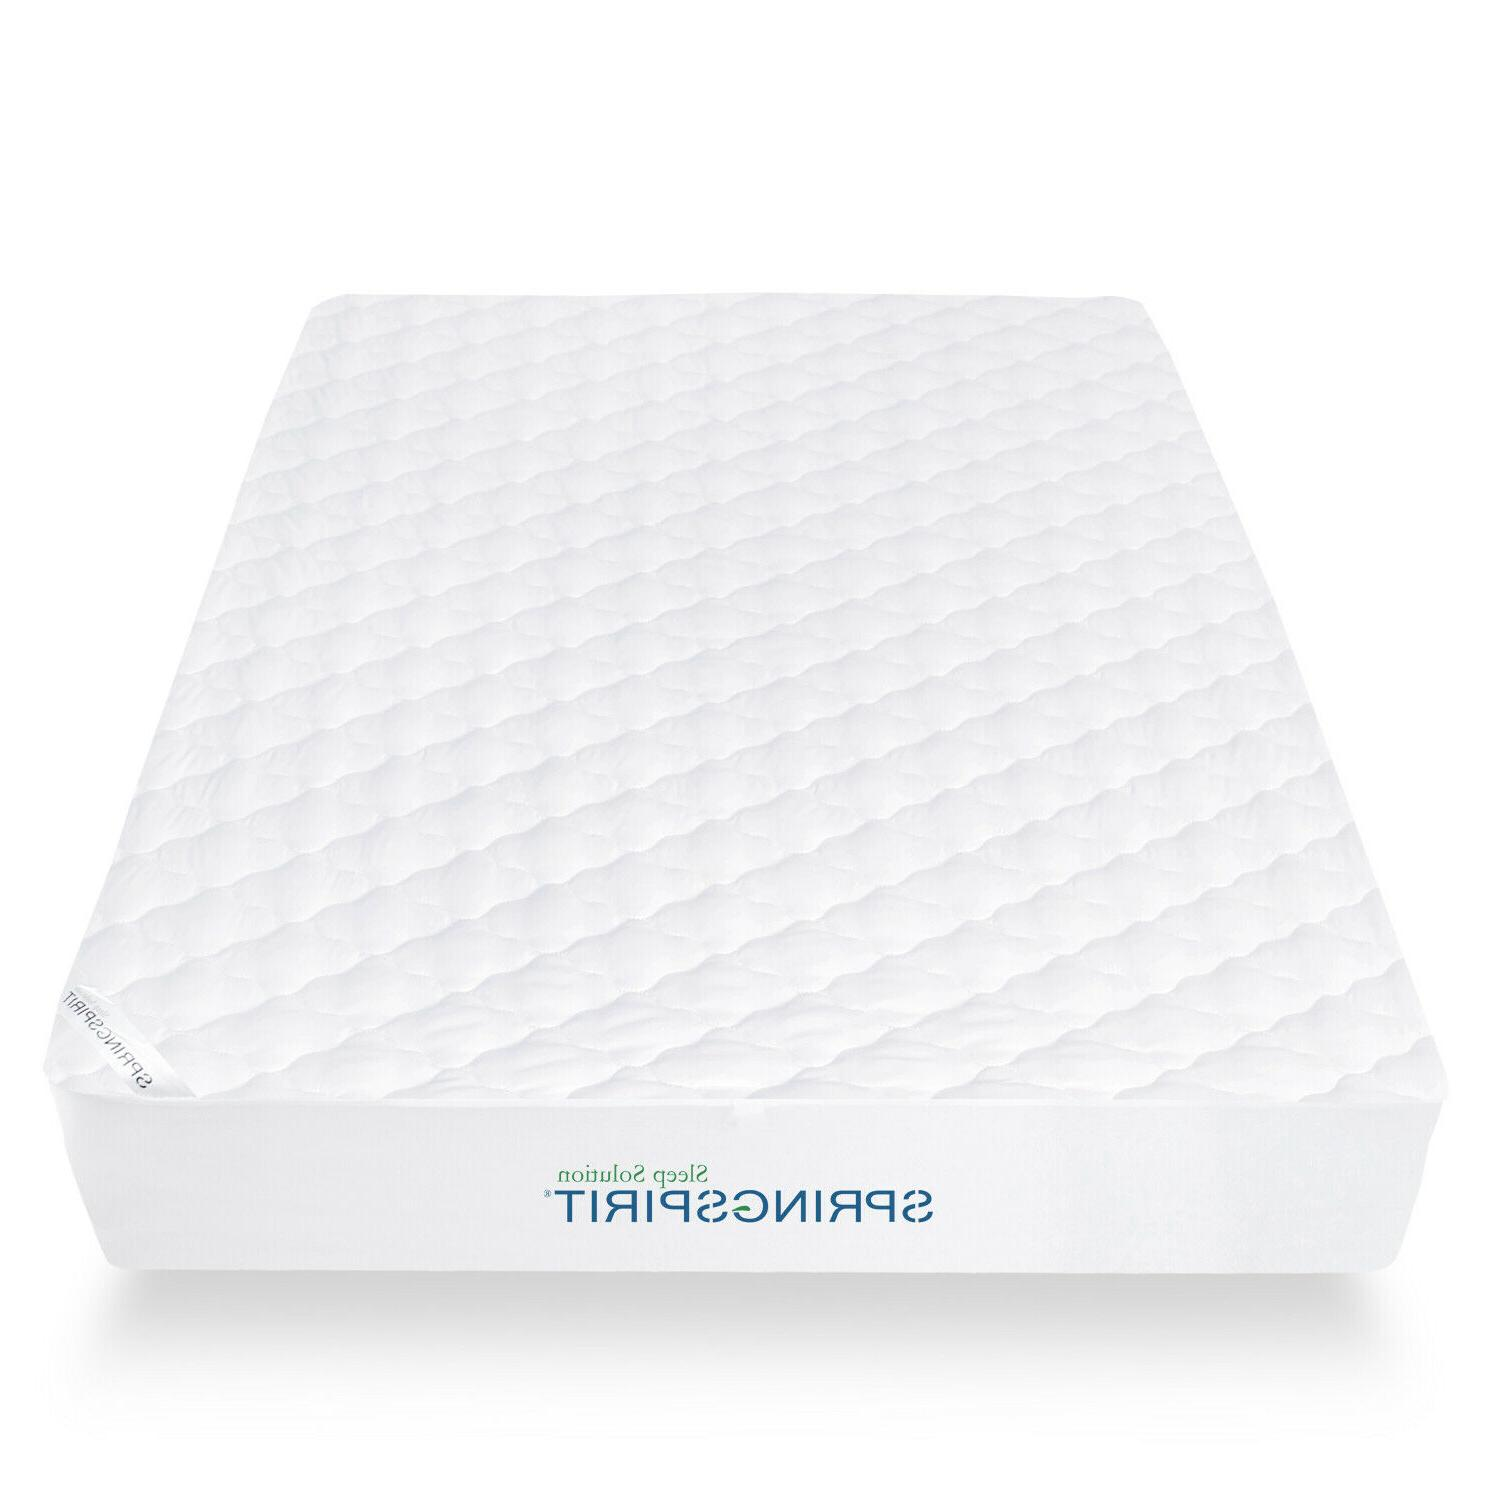 Waterproof Quilted Mattress Pad Absorbent